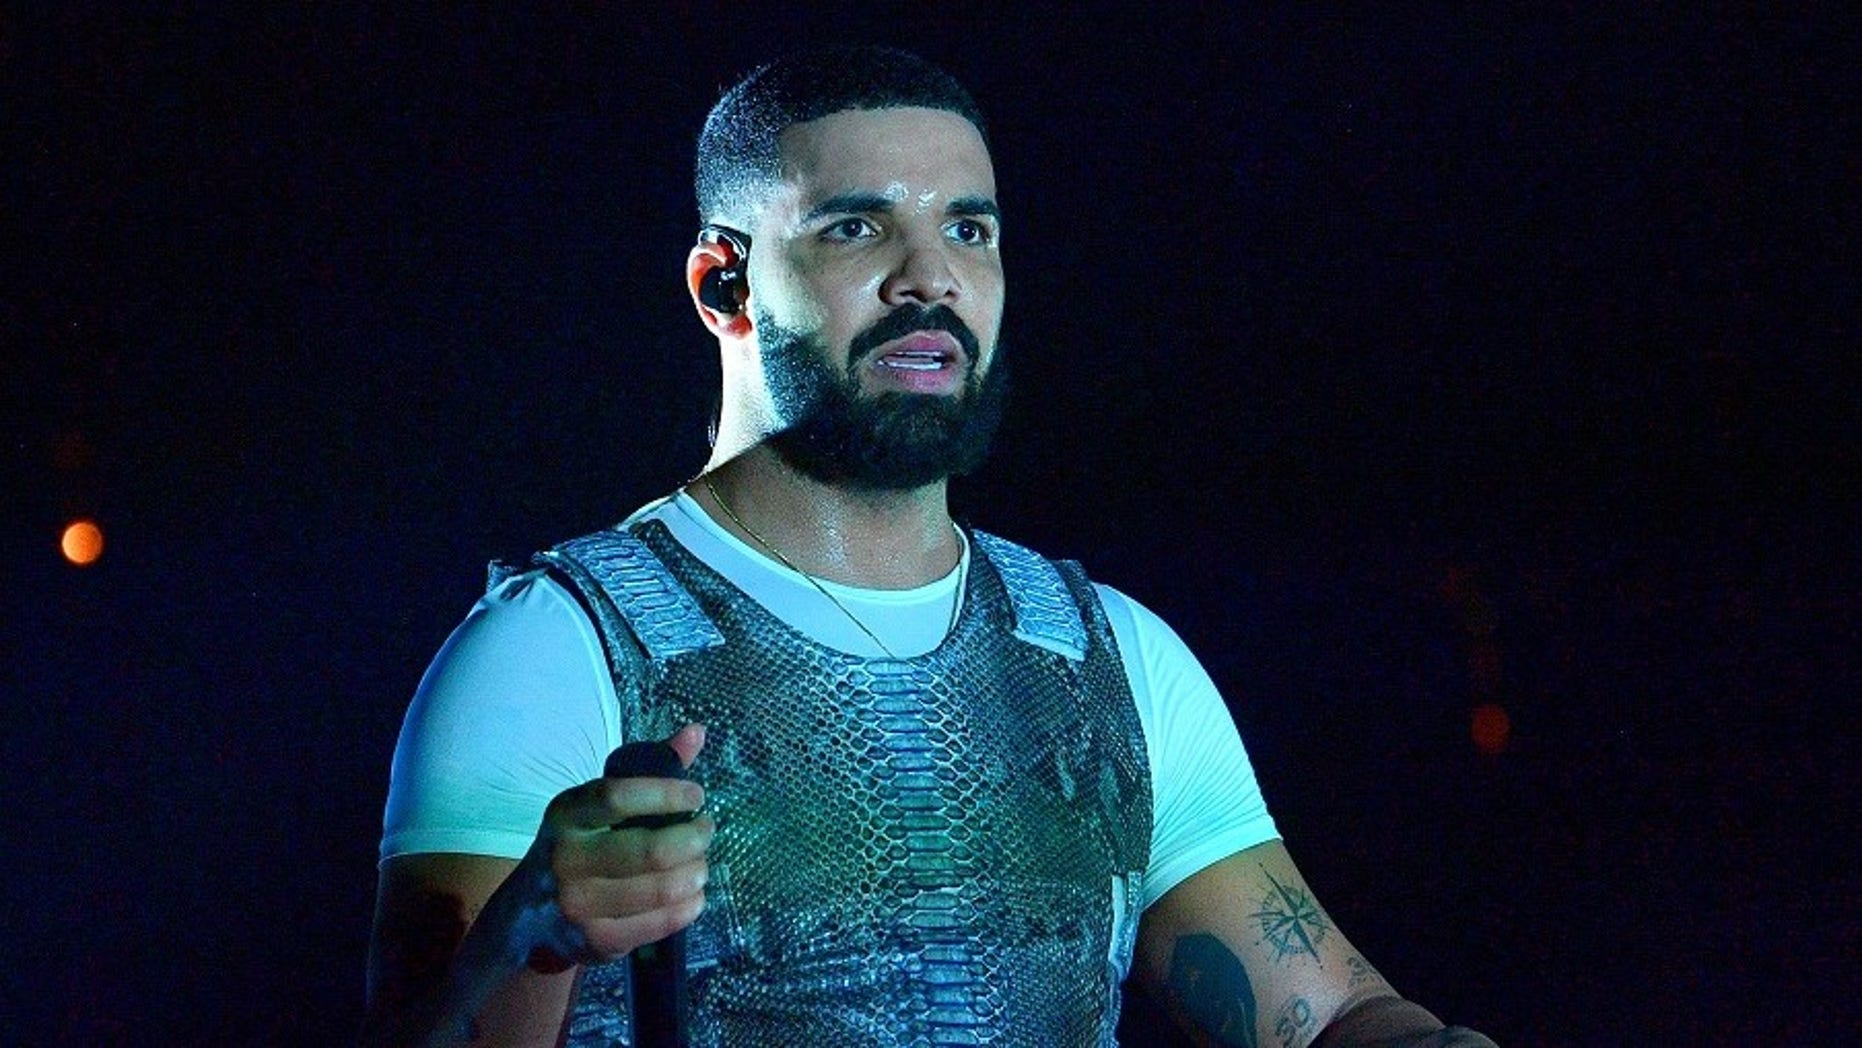 Video of Drake kissing 17-year-old girl on stage surfaces